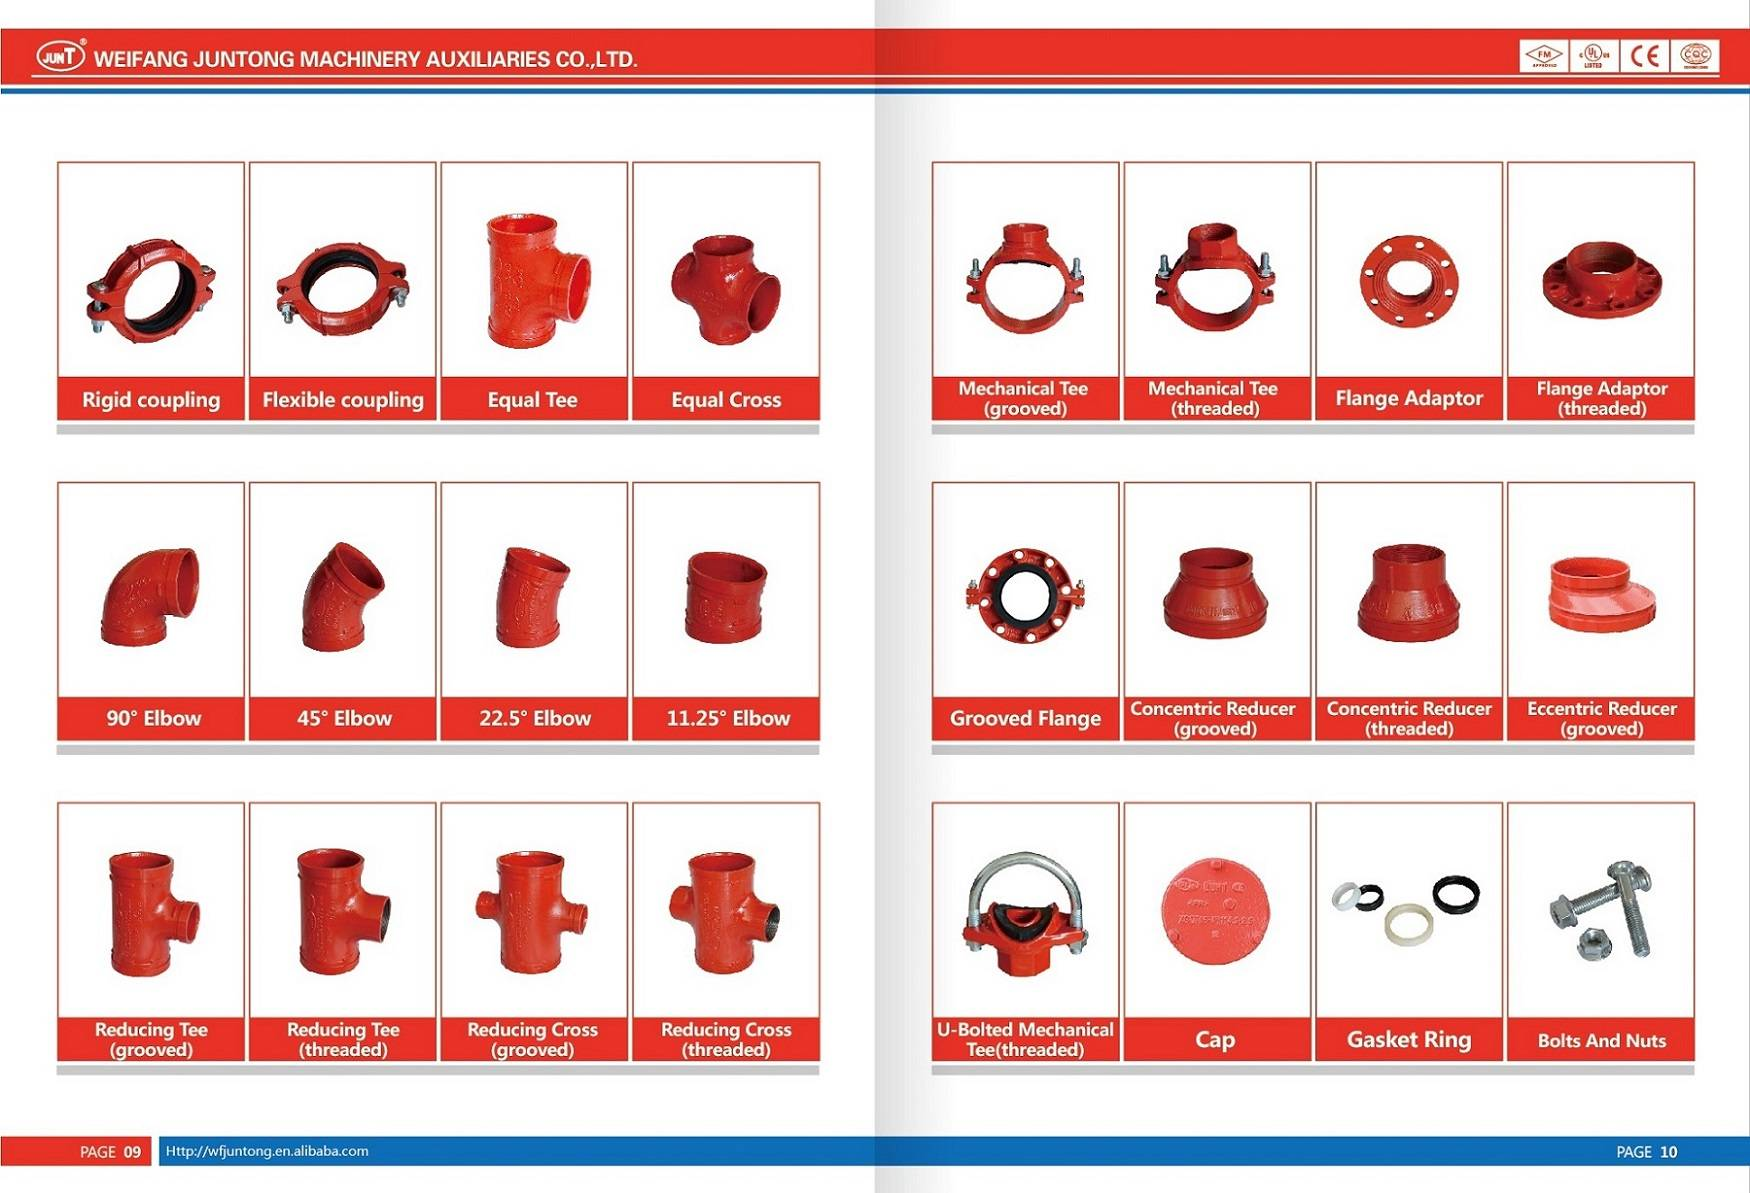 FM UL cUL CE approved ductile iron grooved coupling and grooved pipe fitting cross